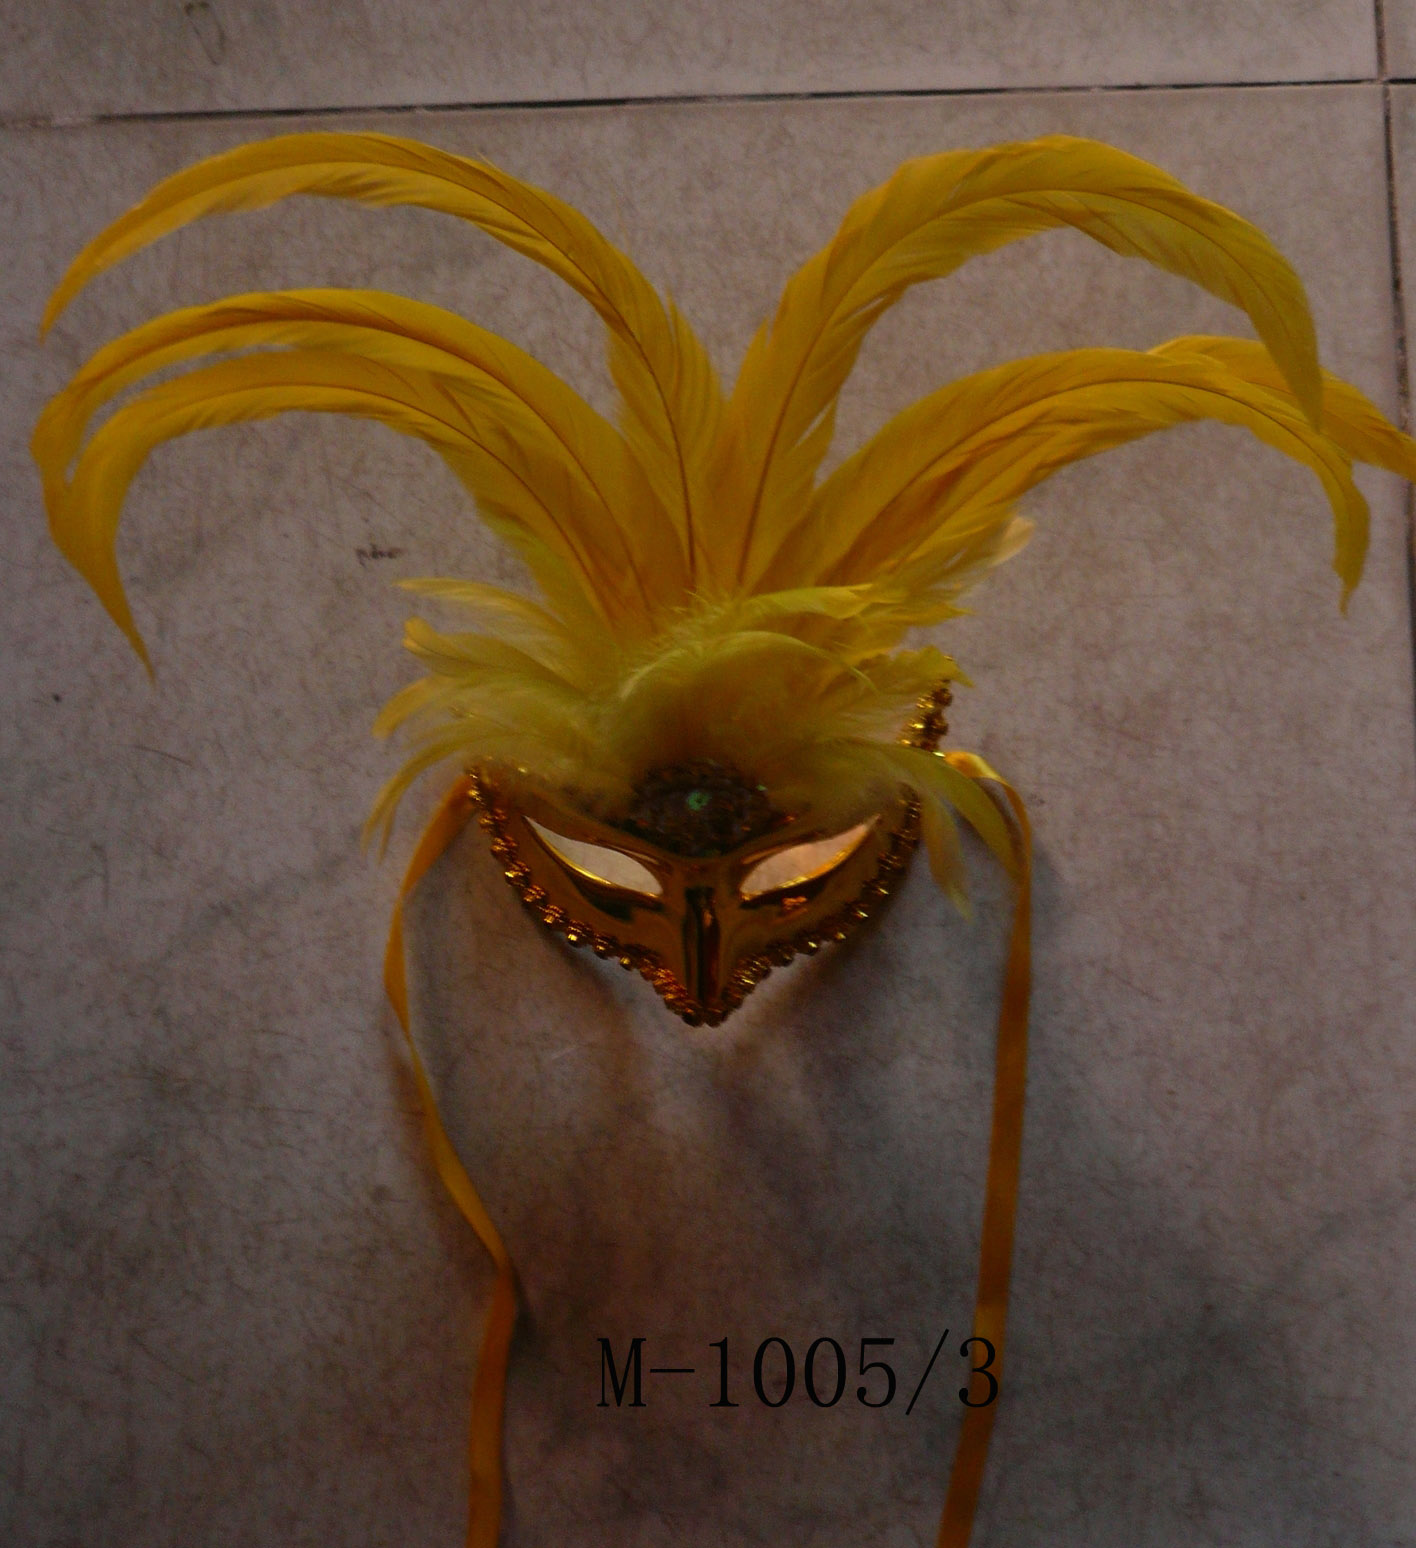 Cheap feather masks for sale - Made in China M-1005/3